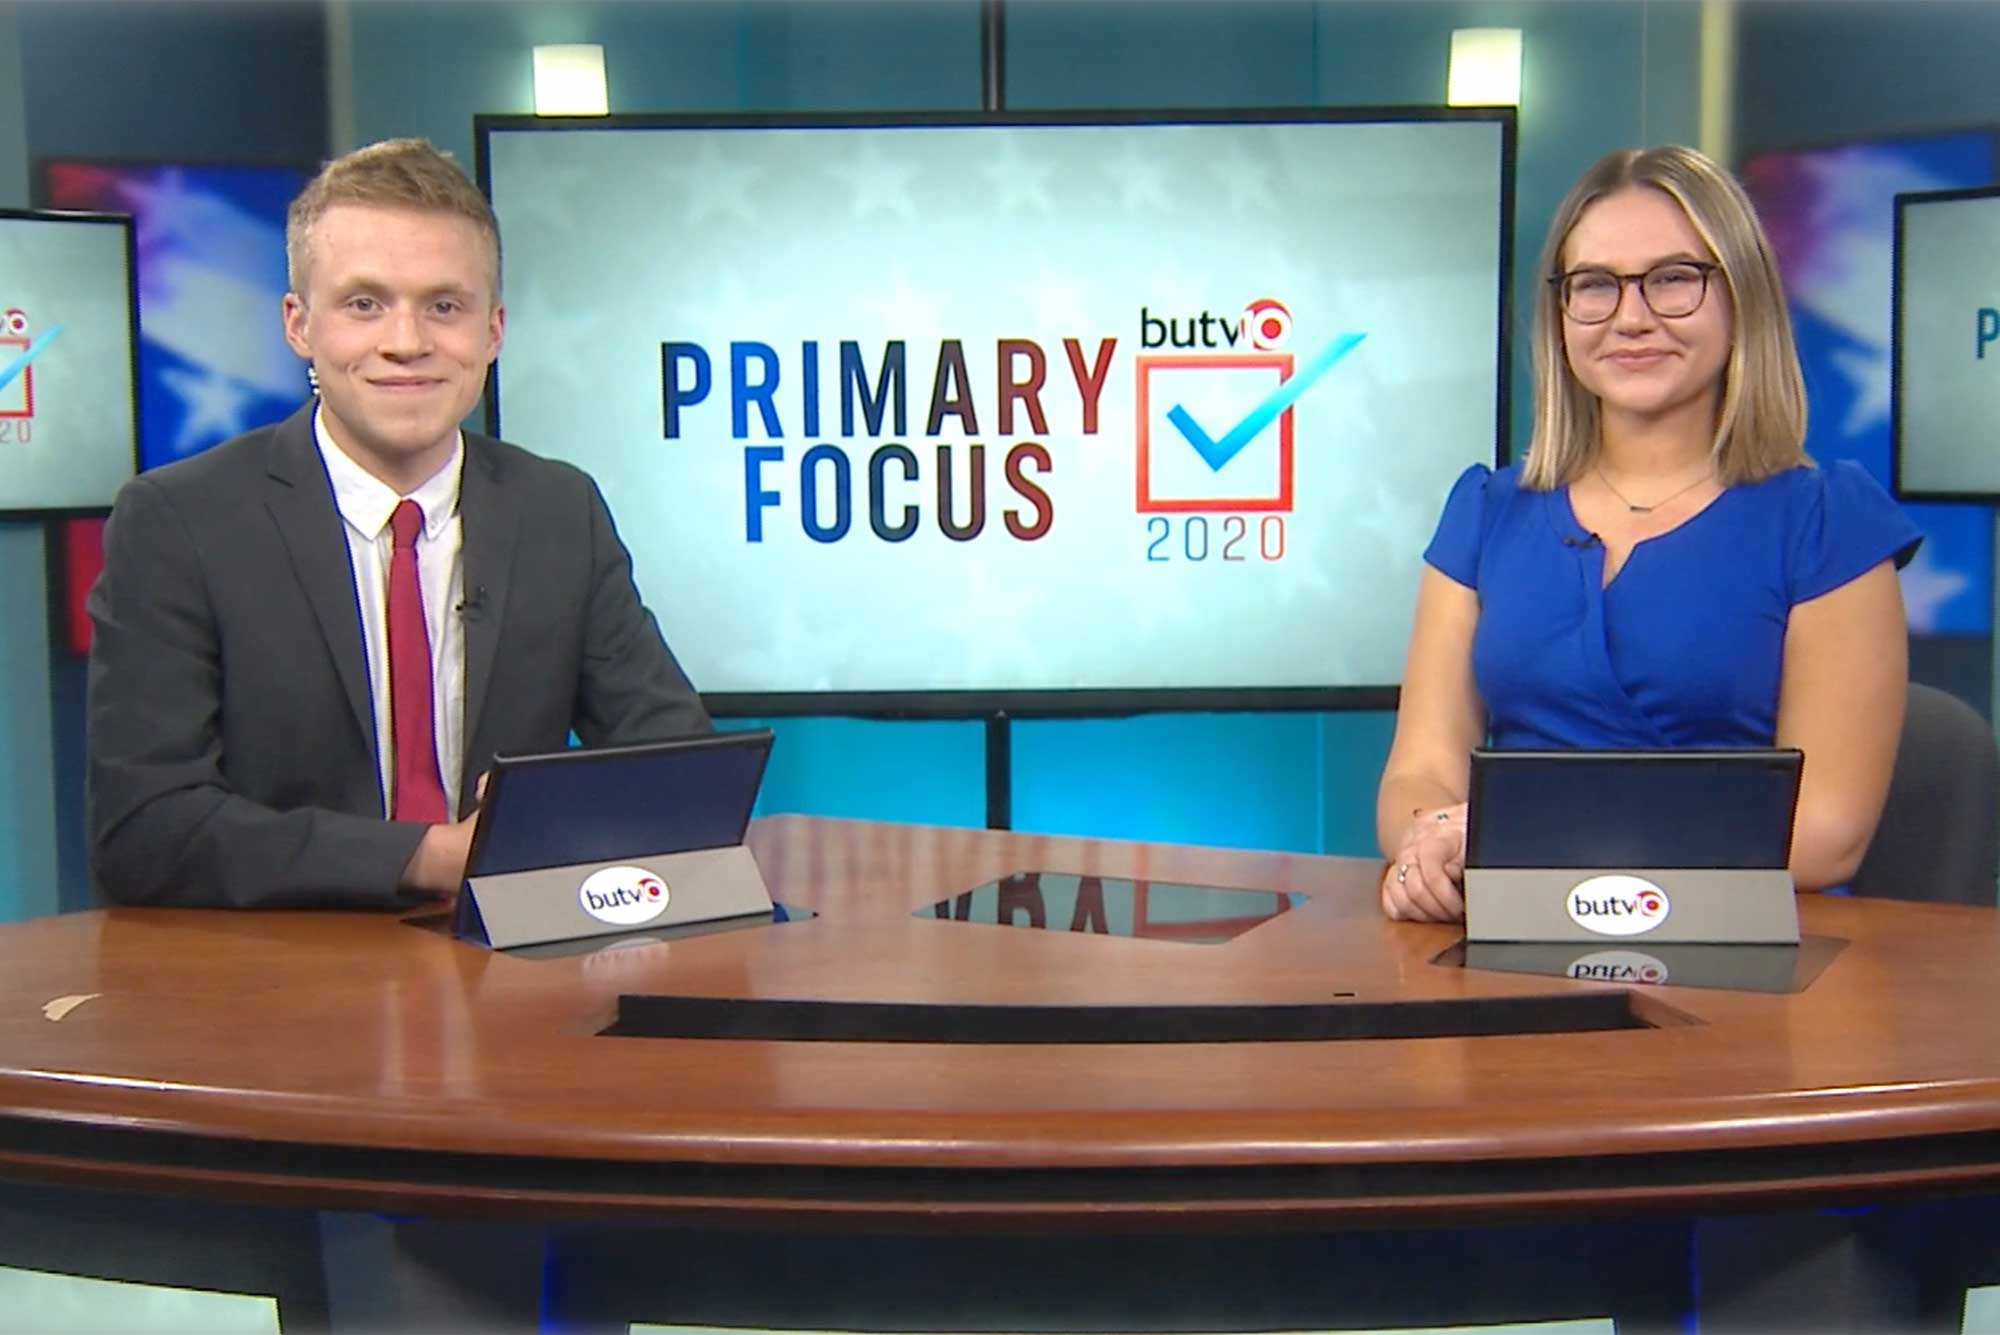 News anchors for BUTV10 show Primary Focus on the set.